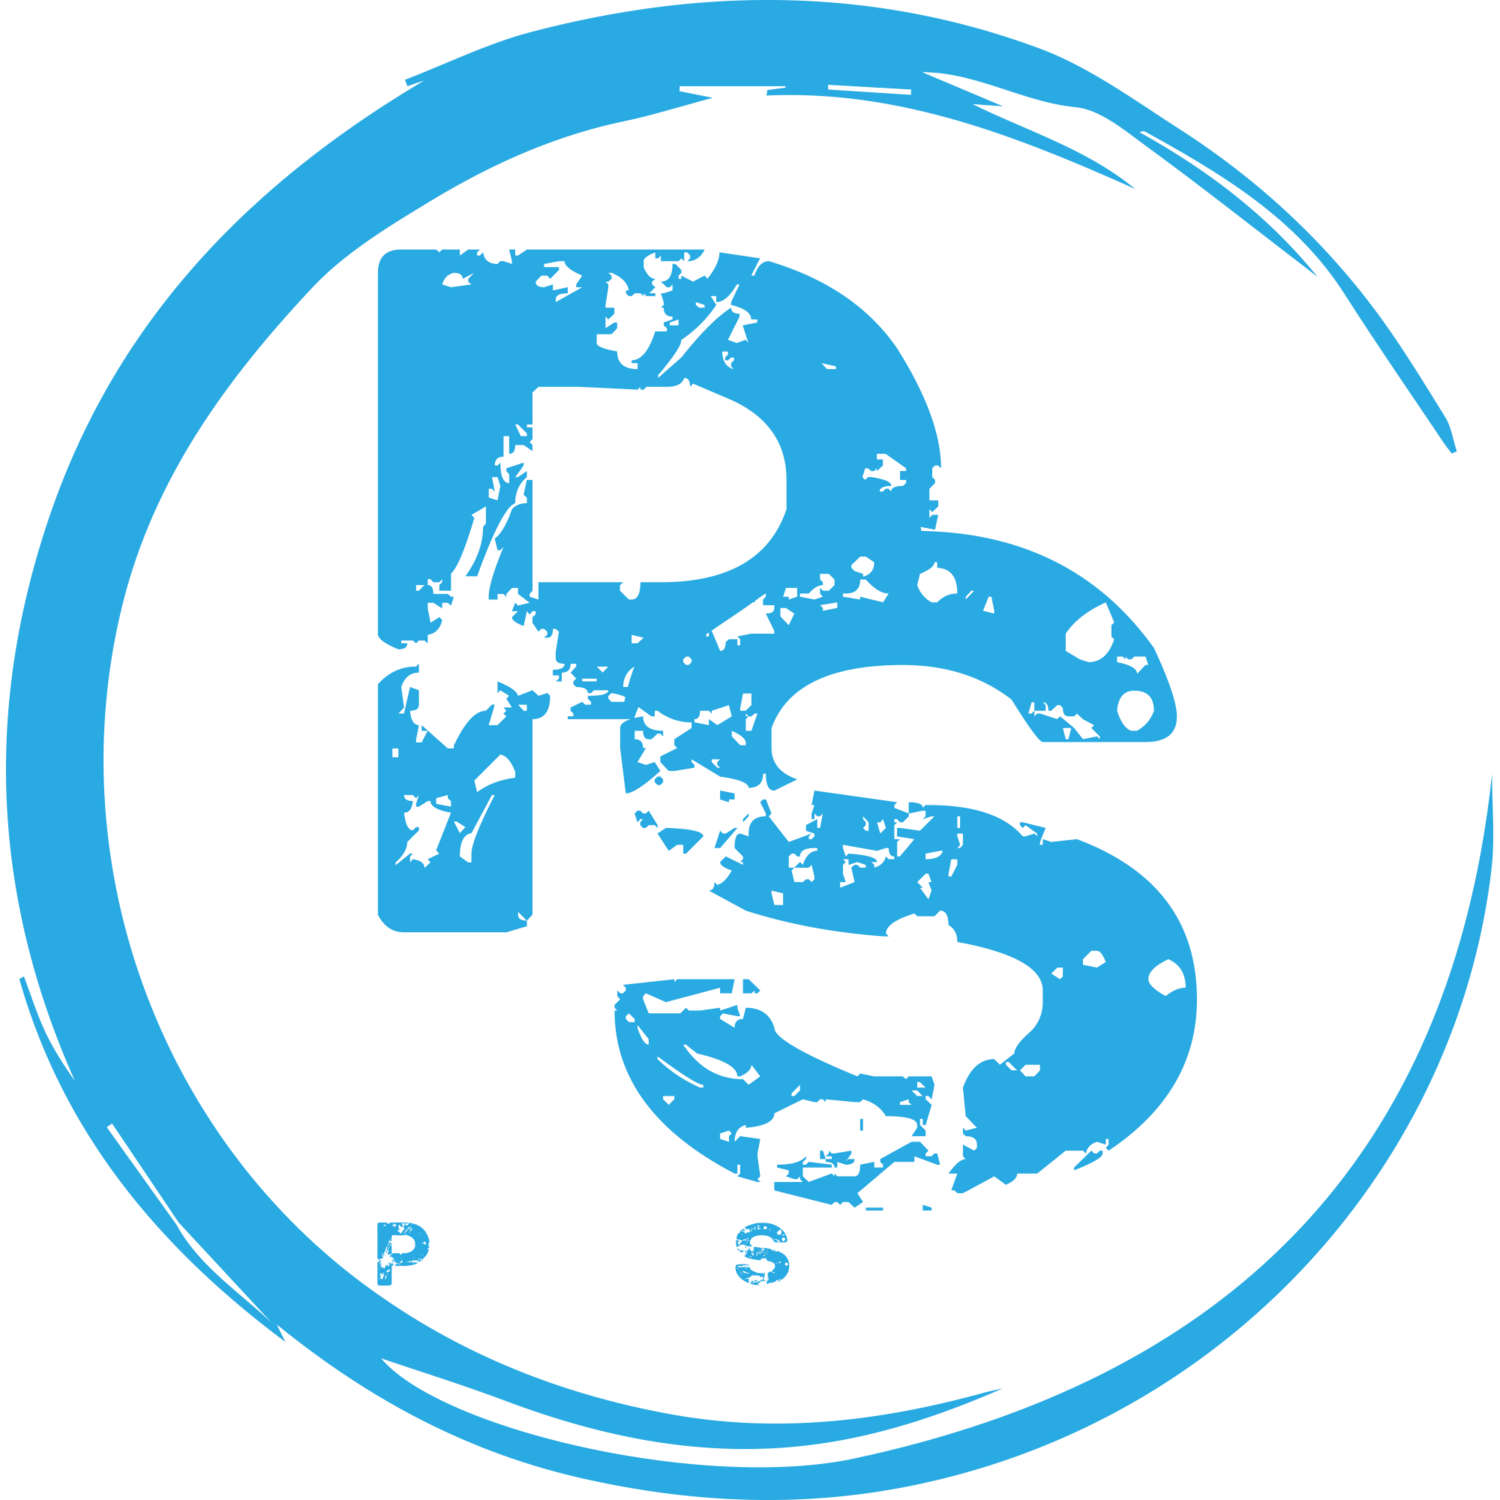 PRIMAL STRENGTH PHYSICAL THERAPY